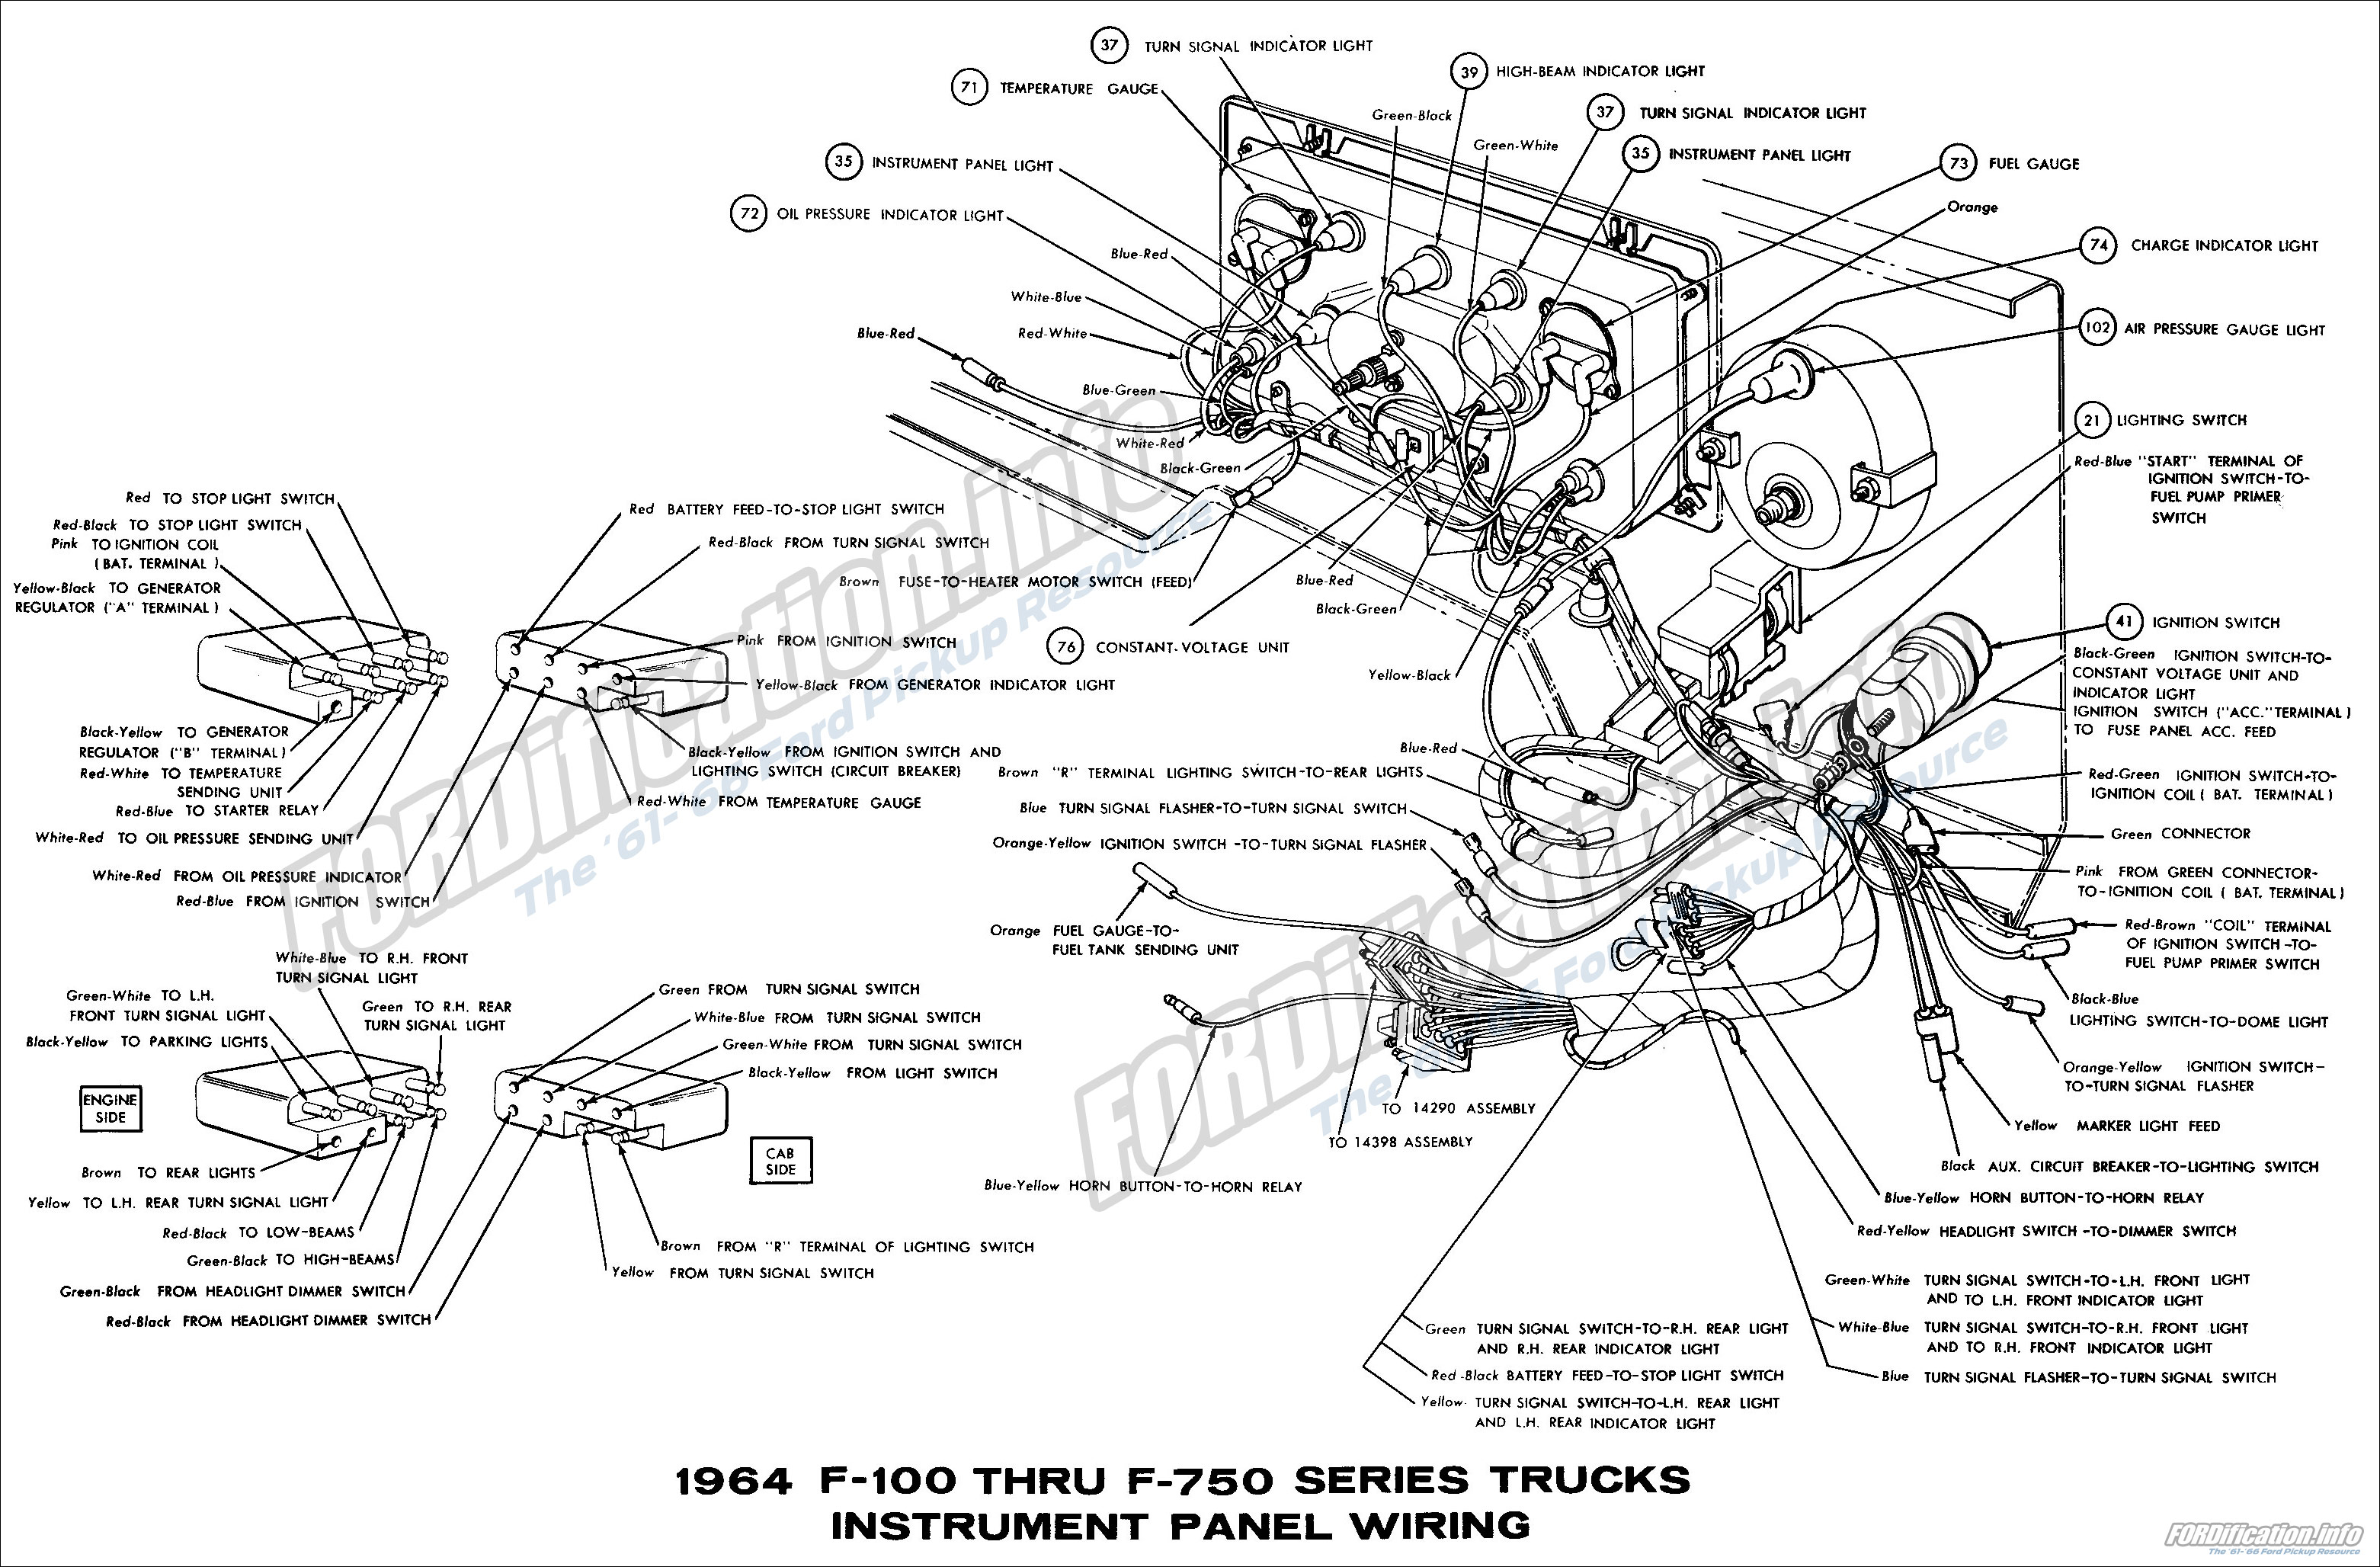 1964 Ford Truck Wiring Diagrams Fordification Info The '61 '66 2006 Ford Truck Wiring Diagram 2004 Ford F 650 Wiring Diagrams On 1964 F100 Thru F750 Series Trucks